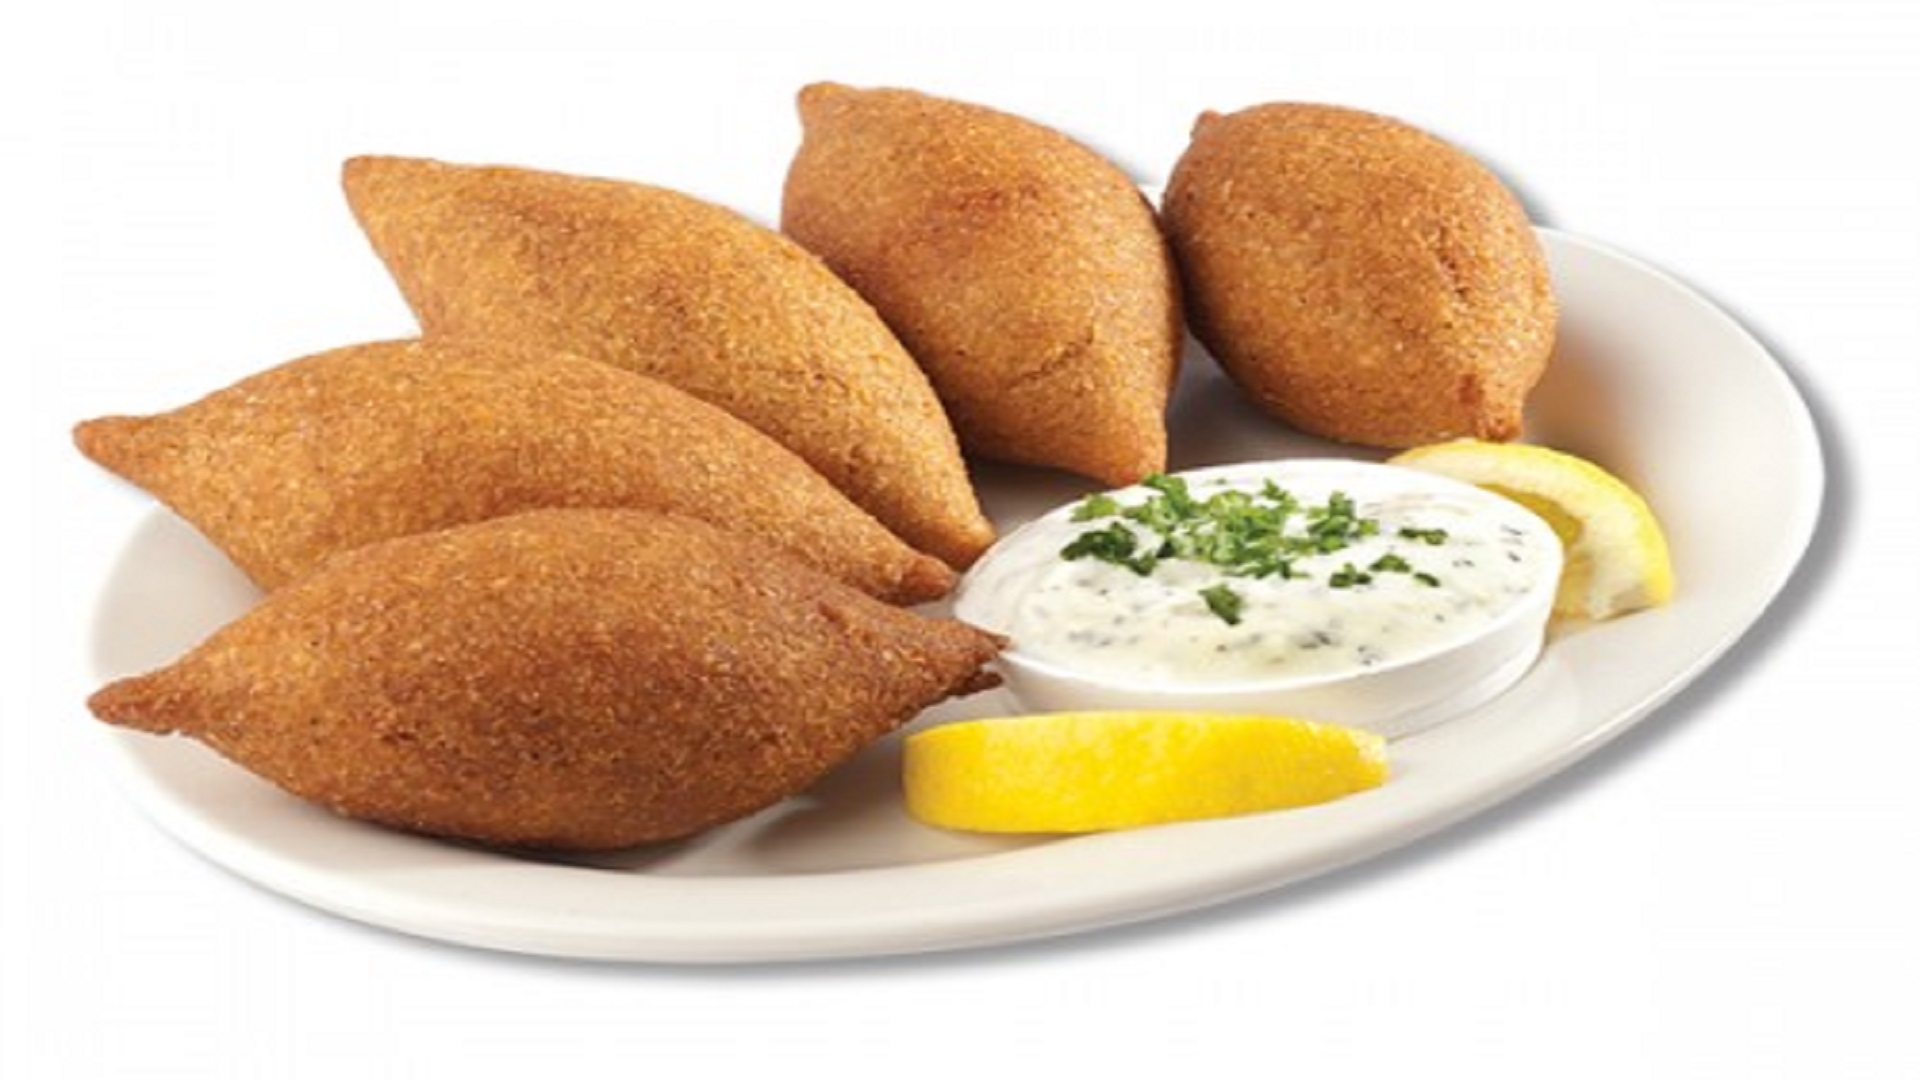 7 of the best lebanese foods from the countrys traditional cuisine kibbeh typical ground meat dish from lebanese cuisine forumfinder Image collections